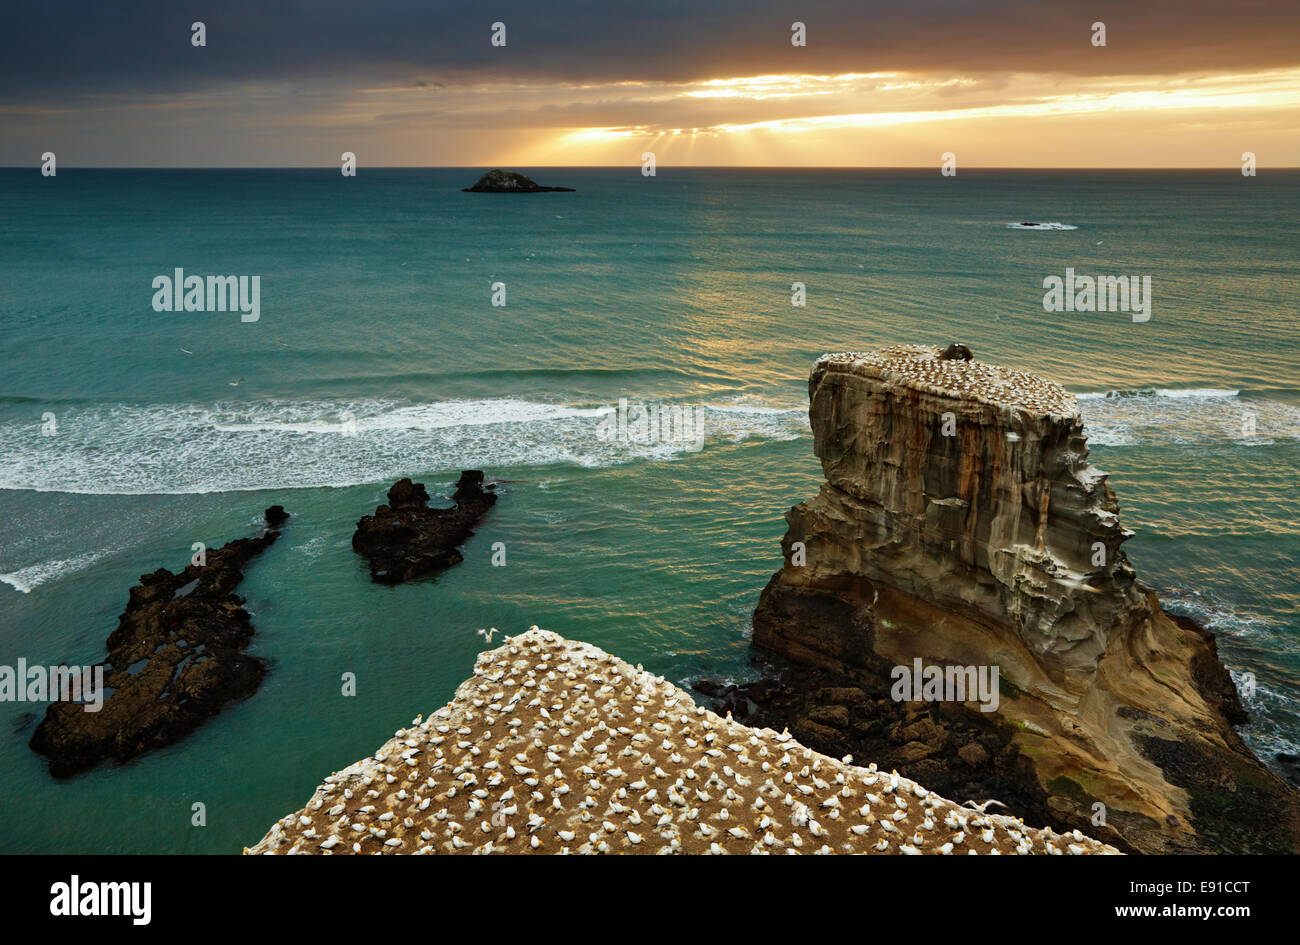 Gannet colony, Muriwai Beach at sunset, New Zealand - Stock Image